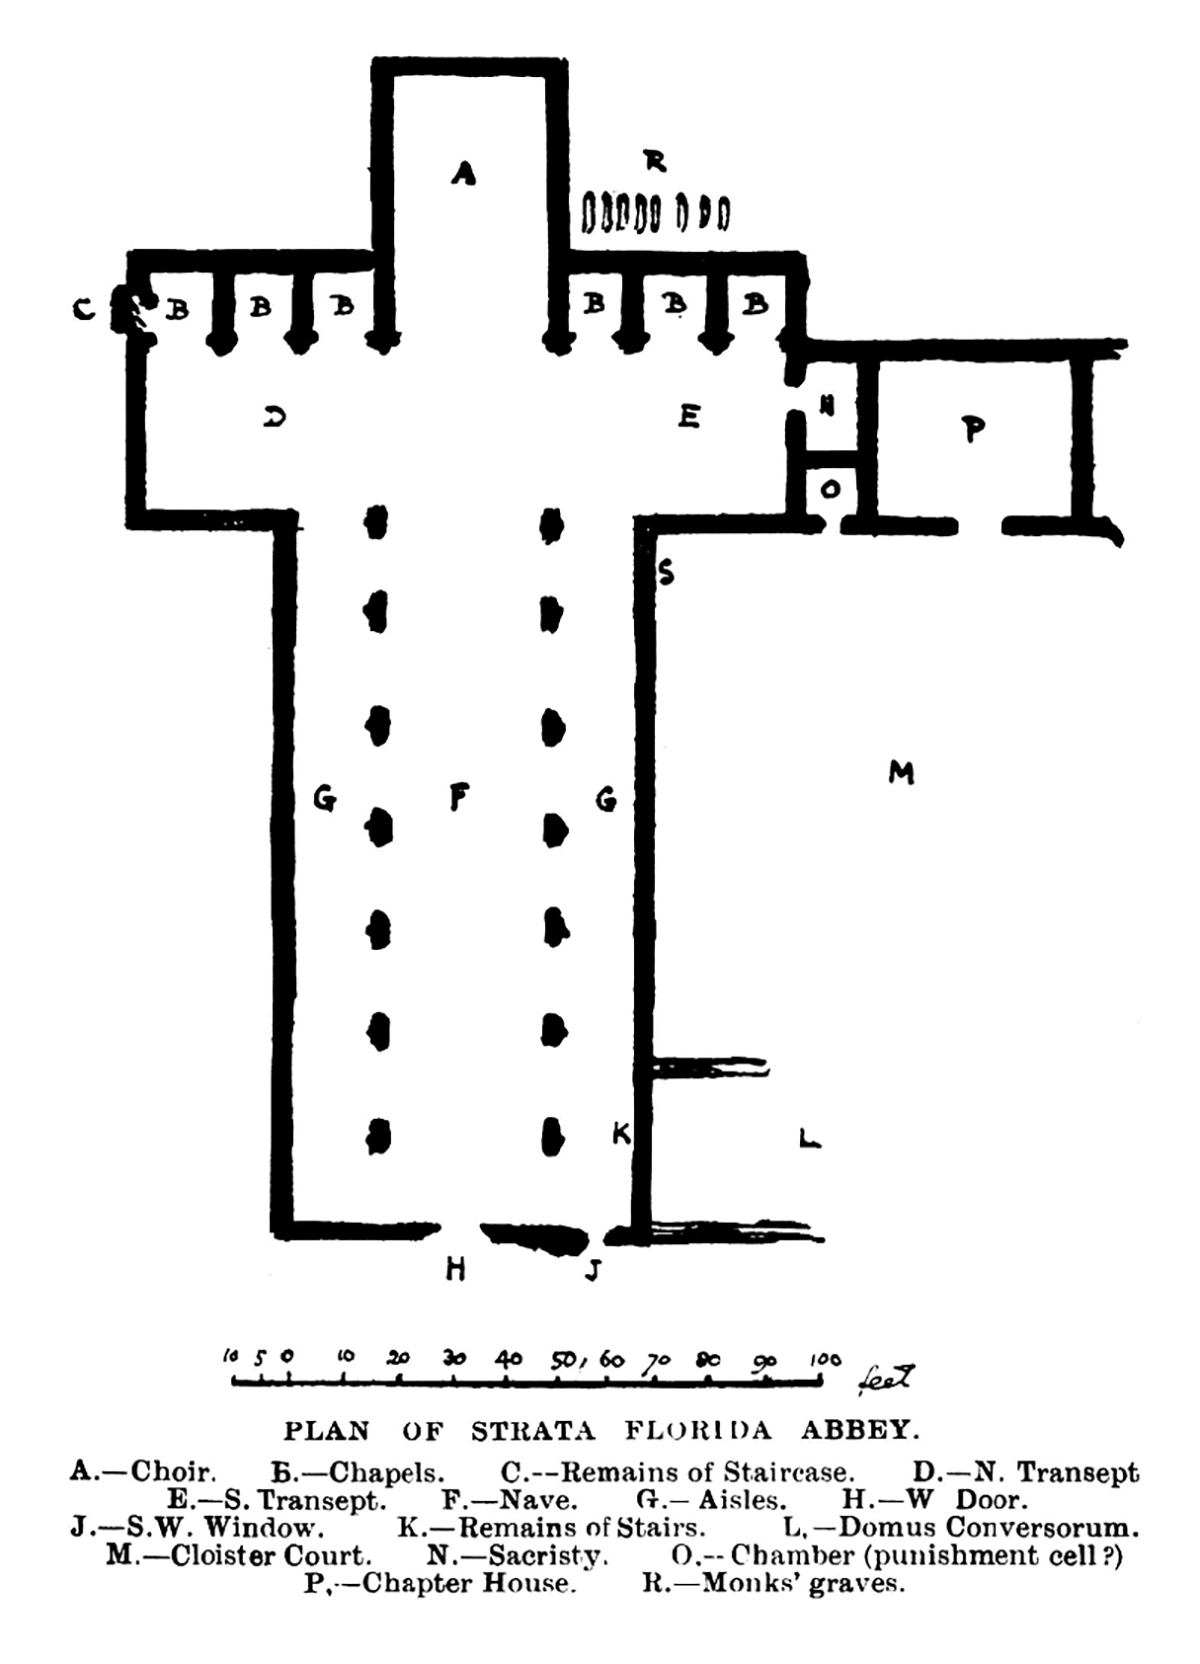 Plan of Strata Florida Abbey